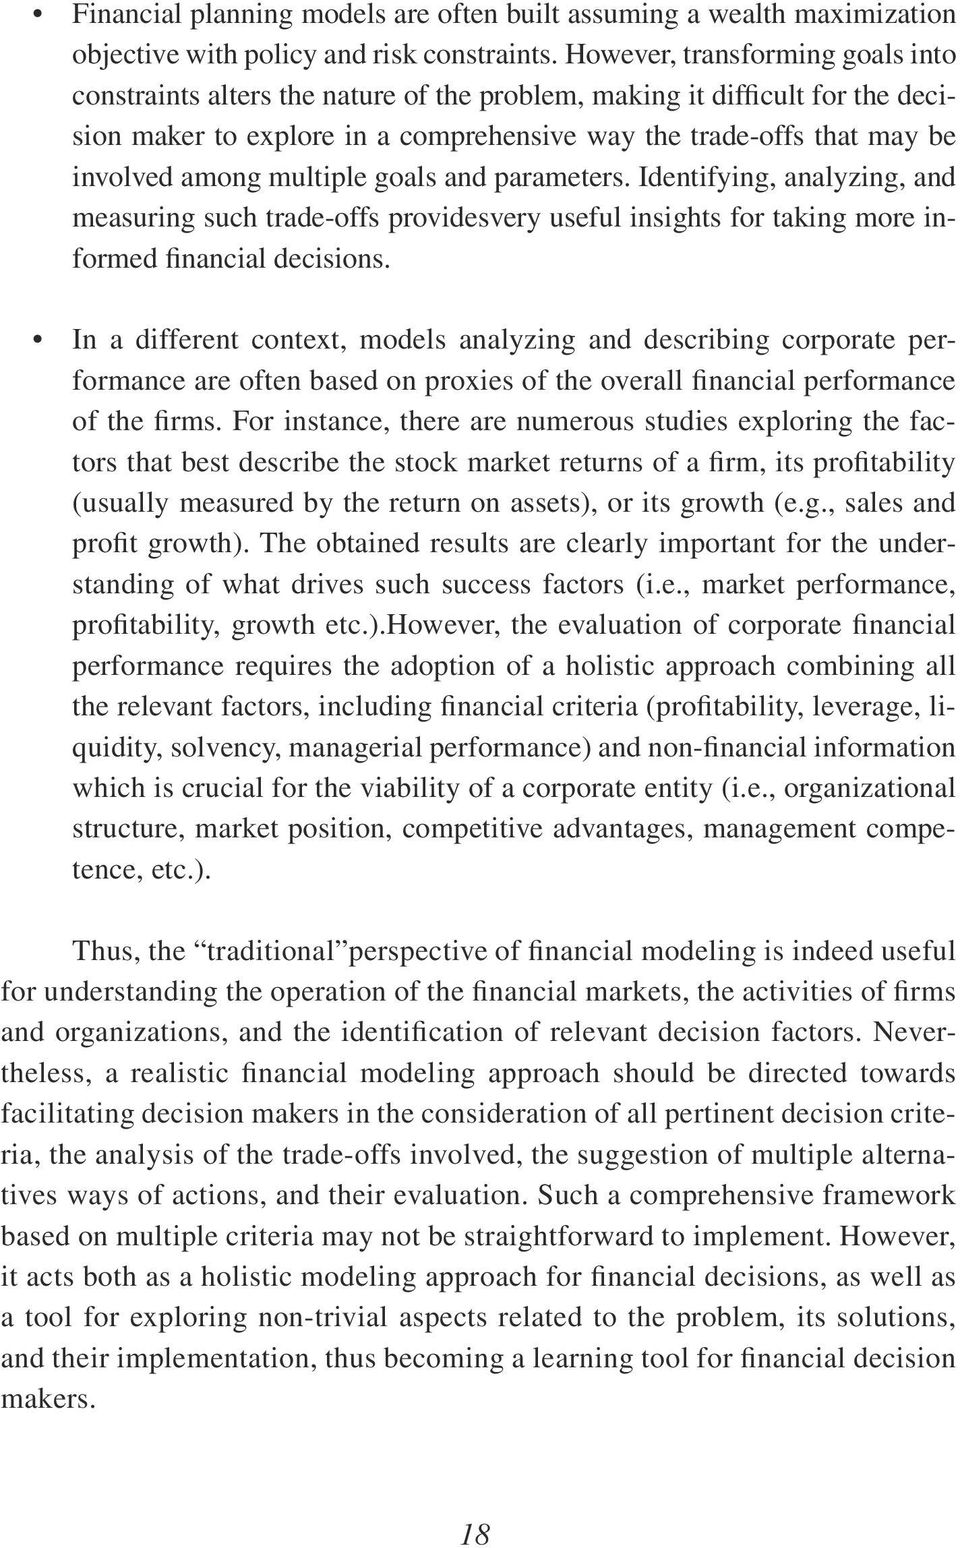 multiple goals and parameters. Identifying, analyzing, and measuring such trade-offs providesvery useful insights for taking more informed financial decisions.